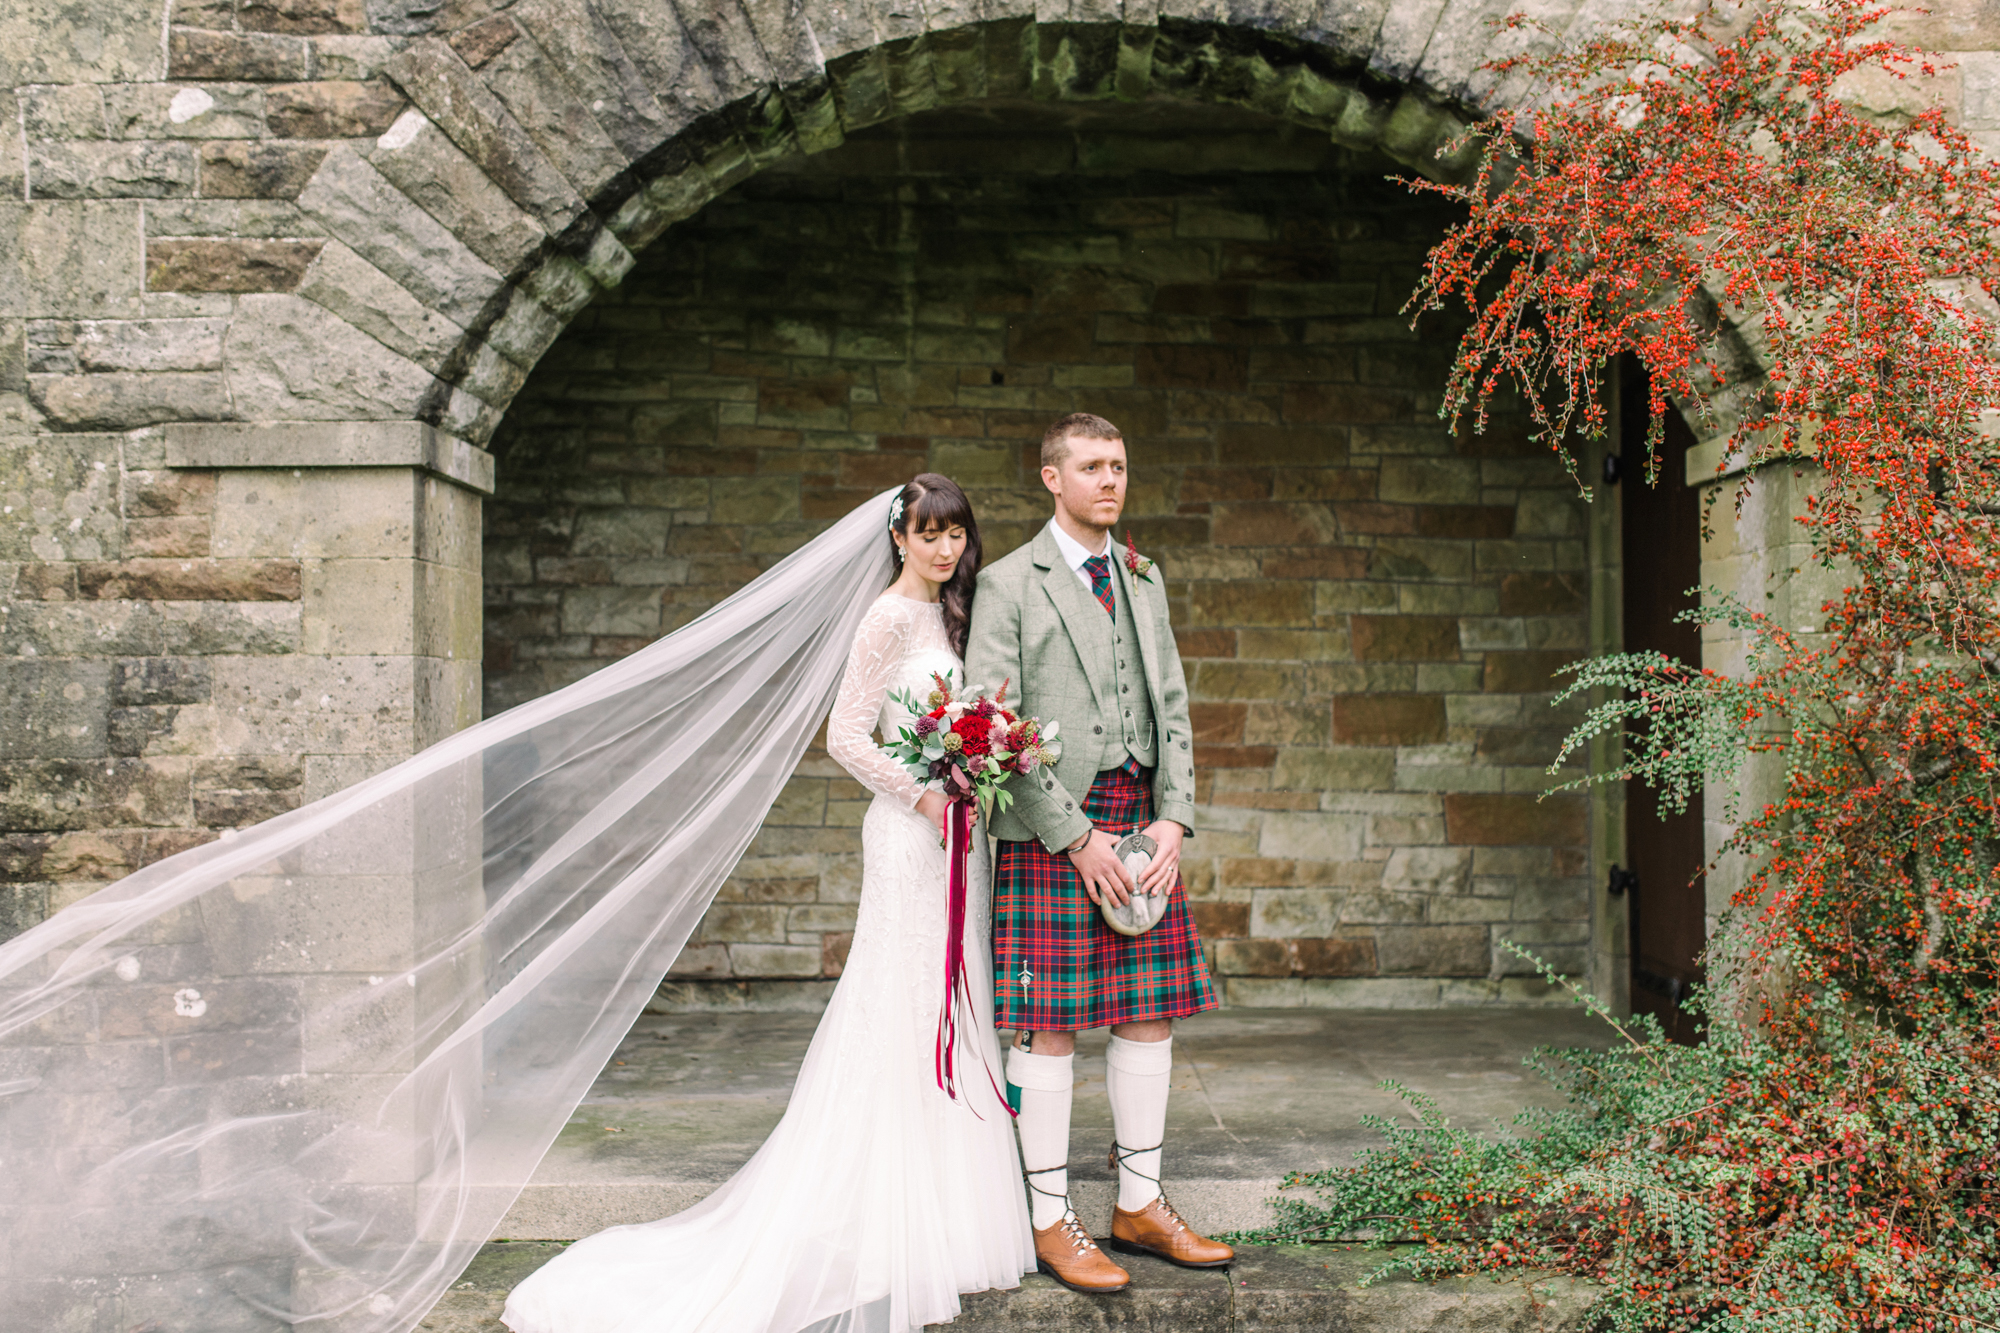 ff90efce601 A Rosa Clara Gown for a Scottish Castle Wedding in the Autumn